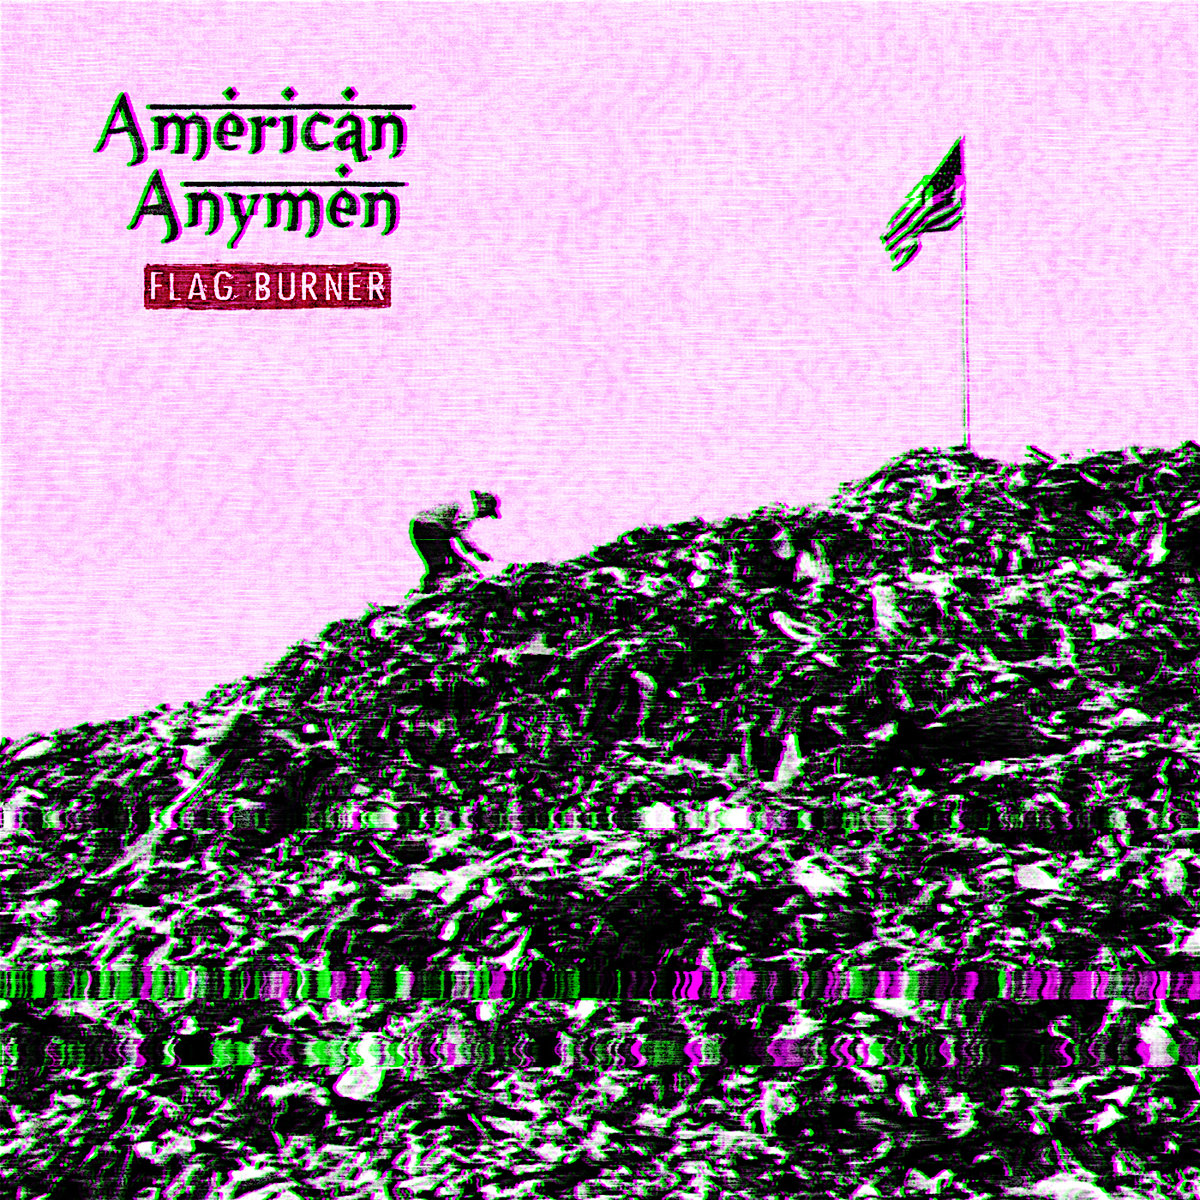 Ethical And Political Punk In A High Temperature: American Anymen's Flag Burner